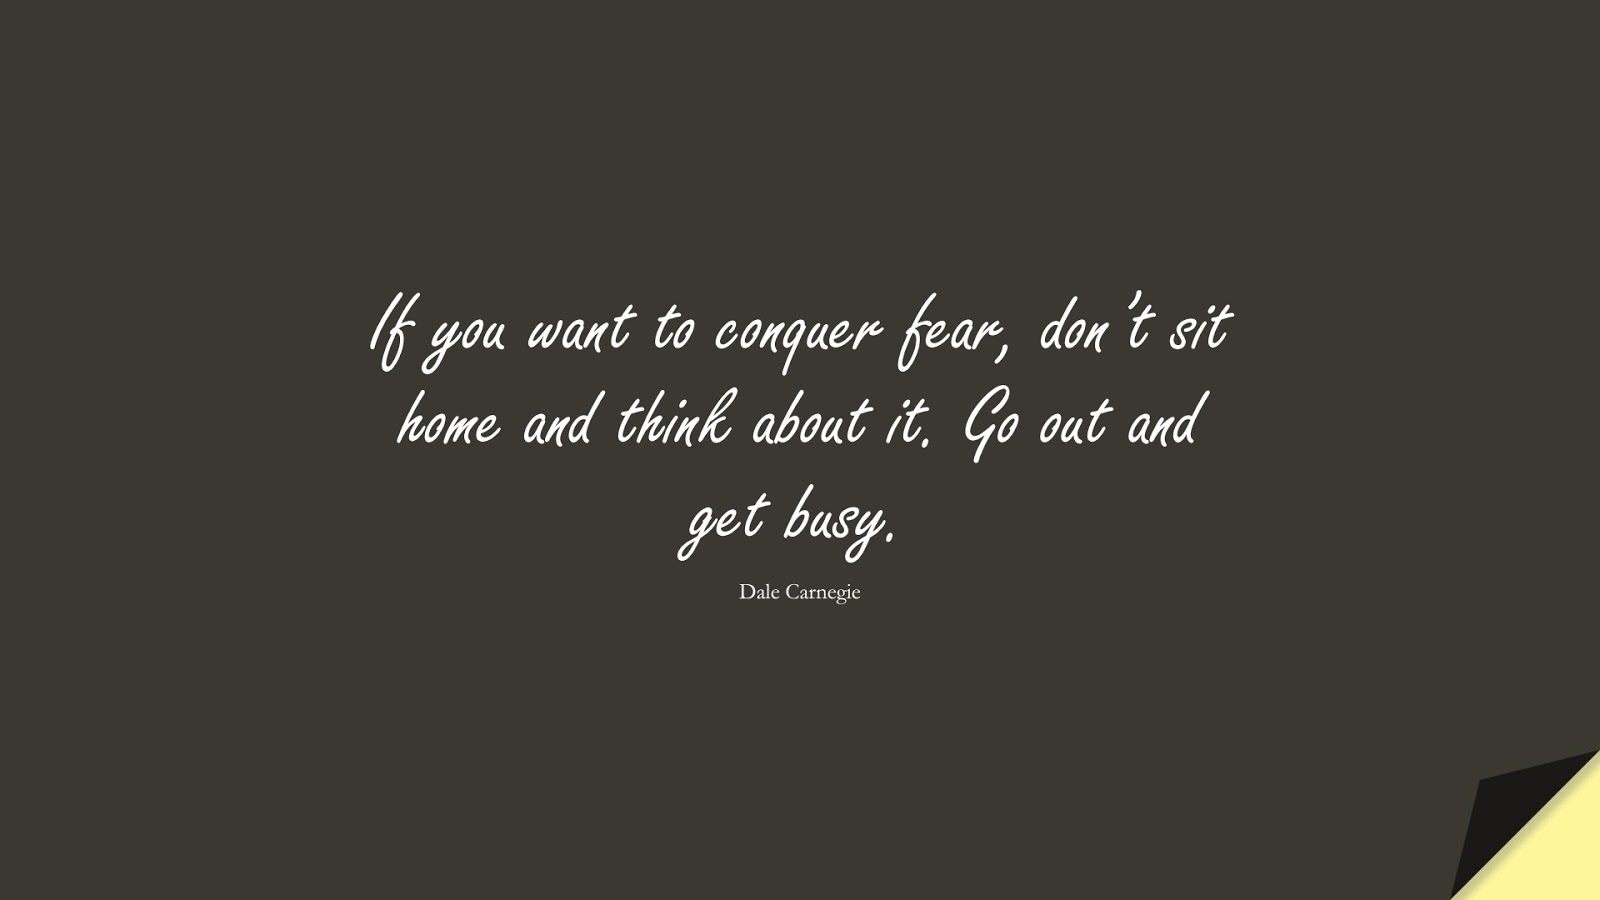 If you want to conquer fear, don't sit home and think about it. Go out and get busy. (Dale Carnegie);  #FearQuotes